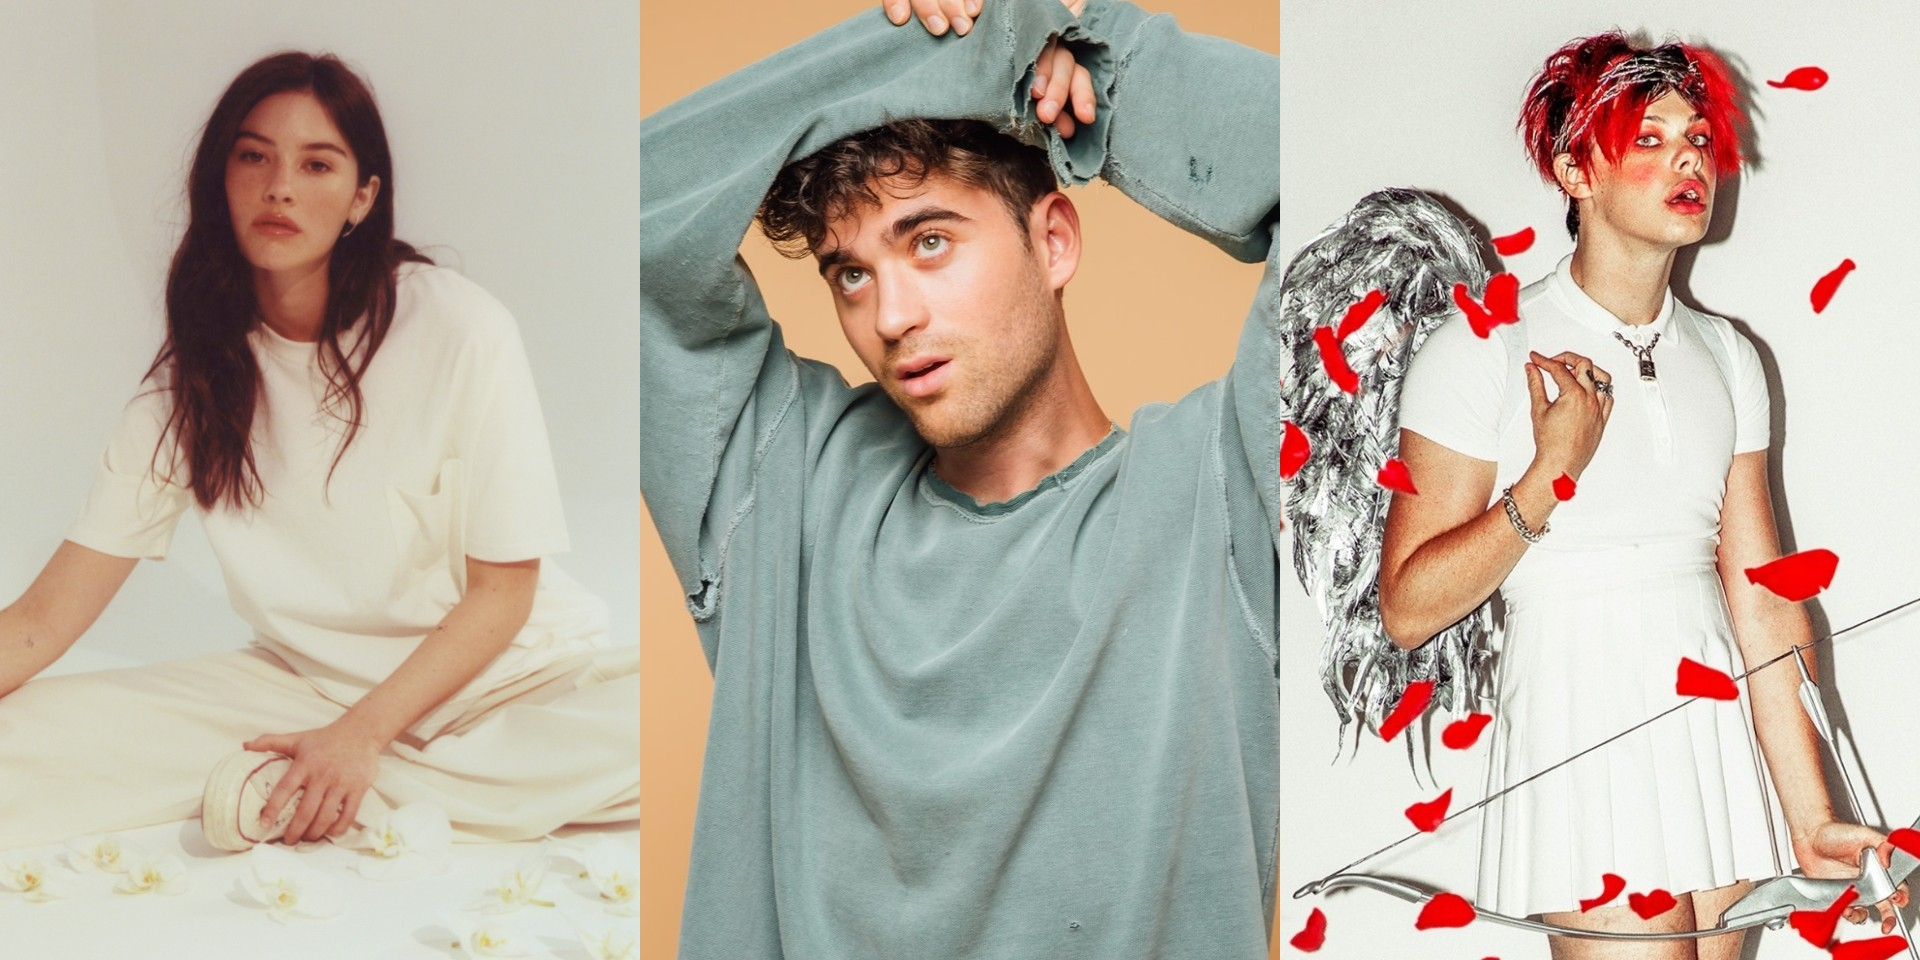 Gracie Abrams, Alexander 23, and YUNGBLUD join Big Hit Entertainment's fan community Weverse